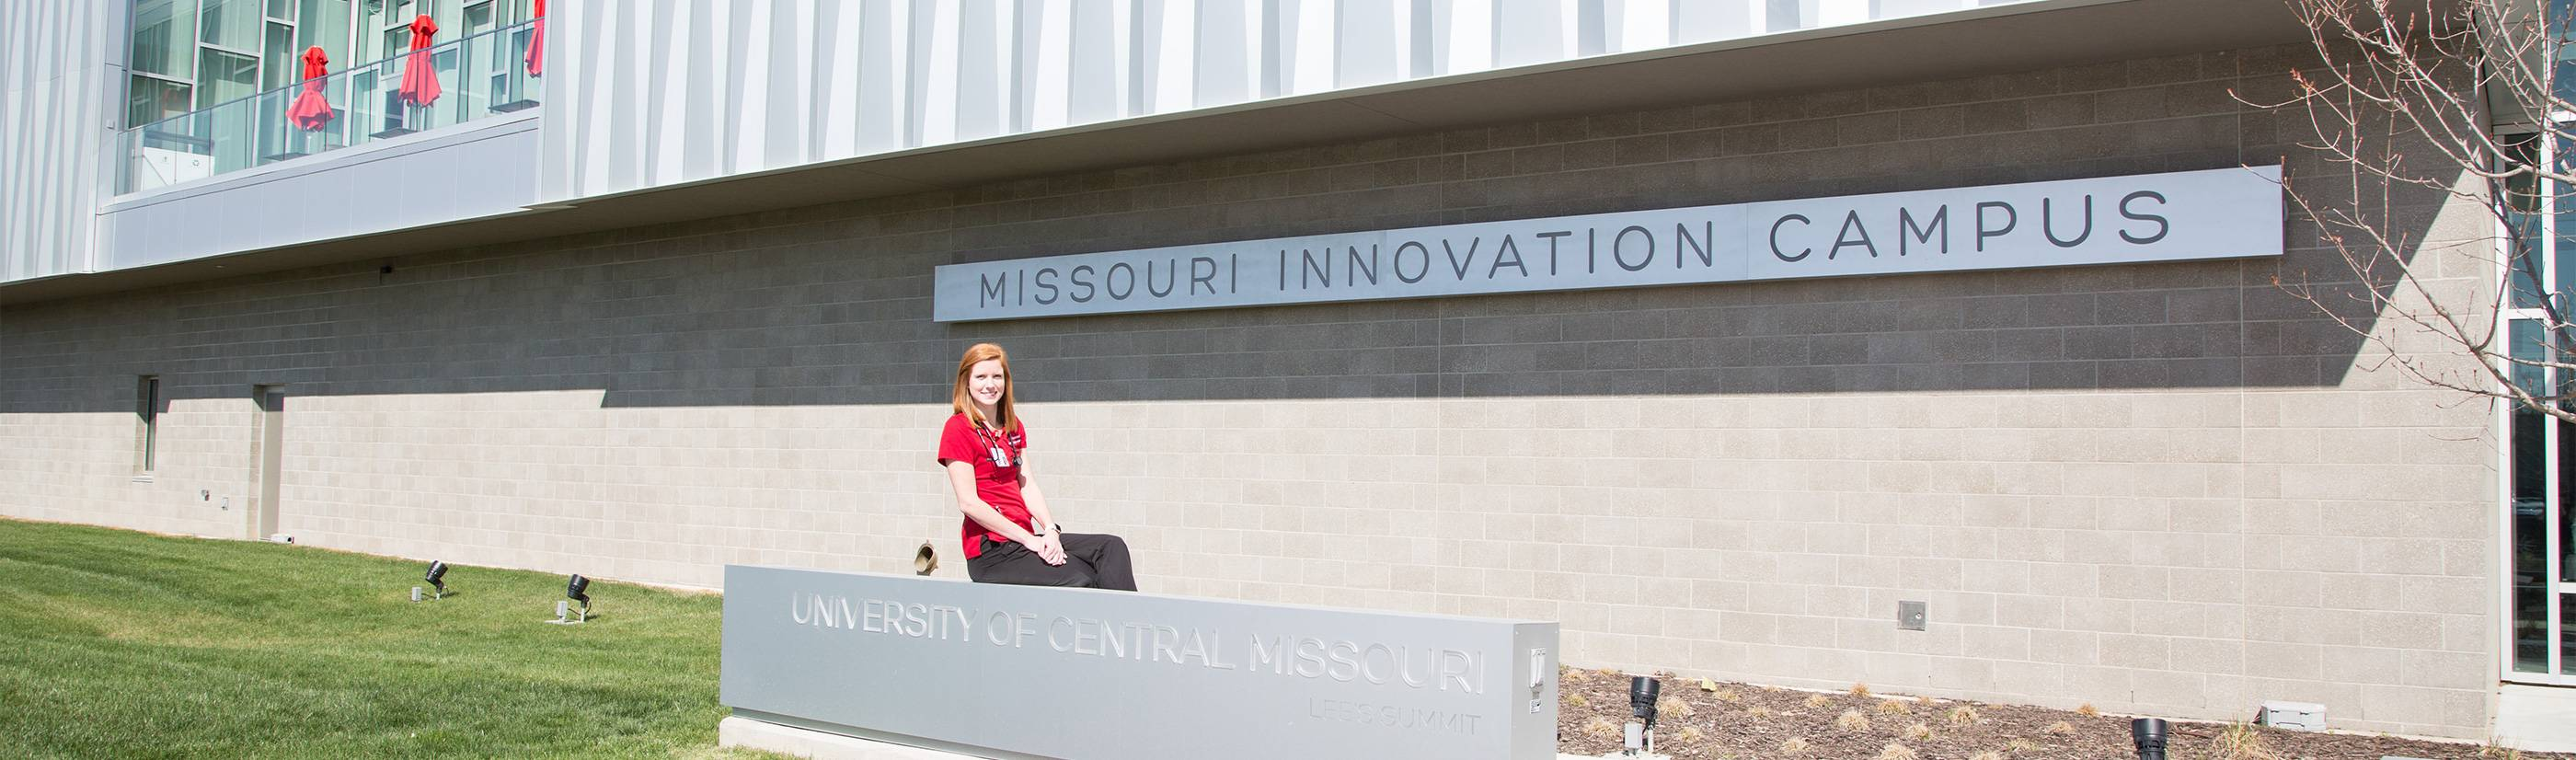 Missouri Innovation Campus with Student